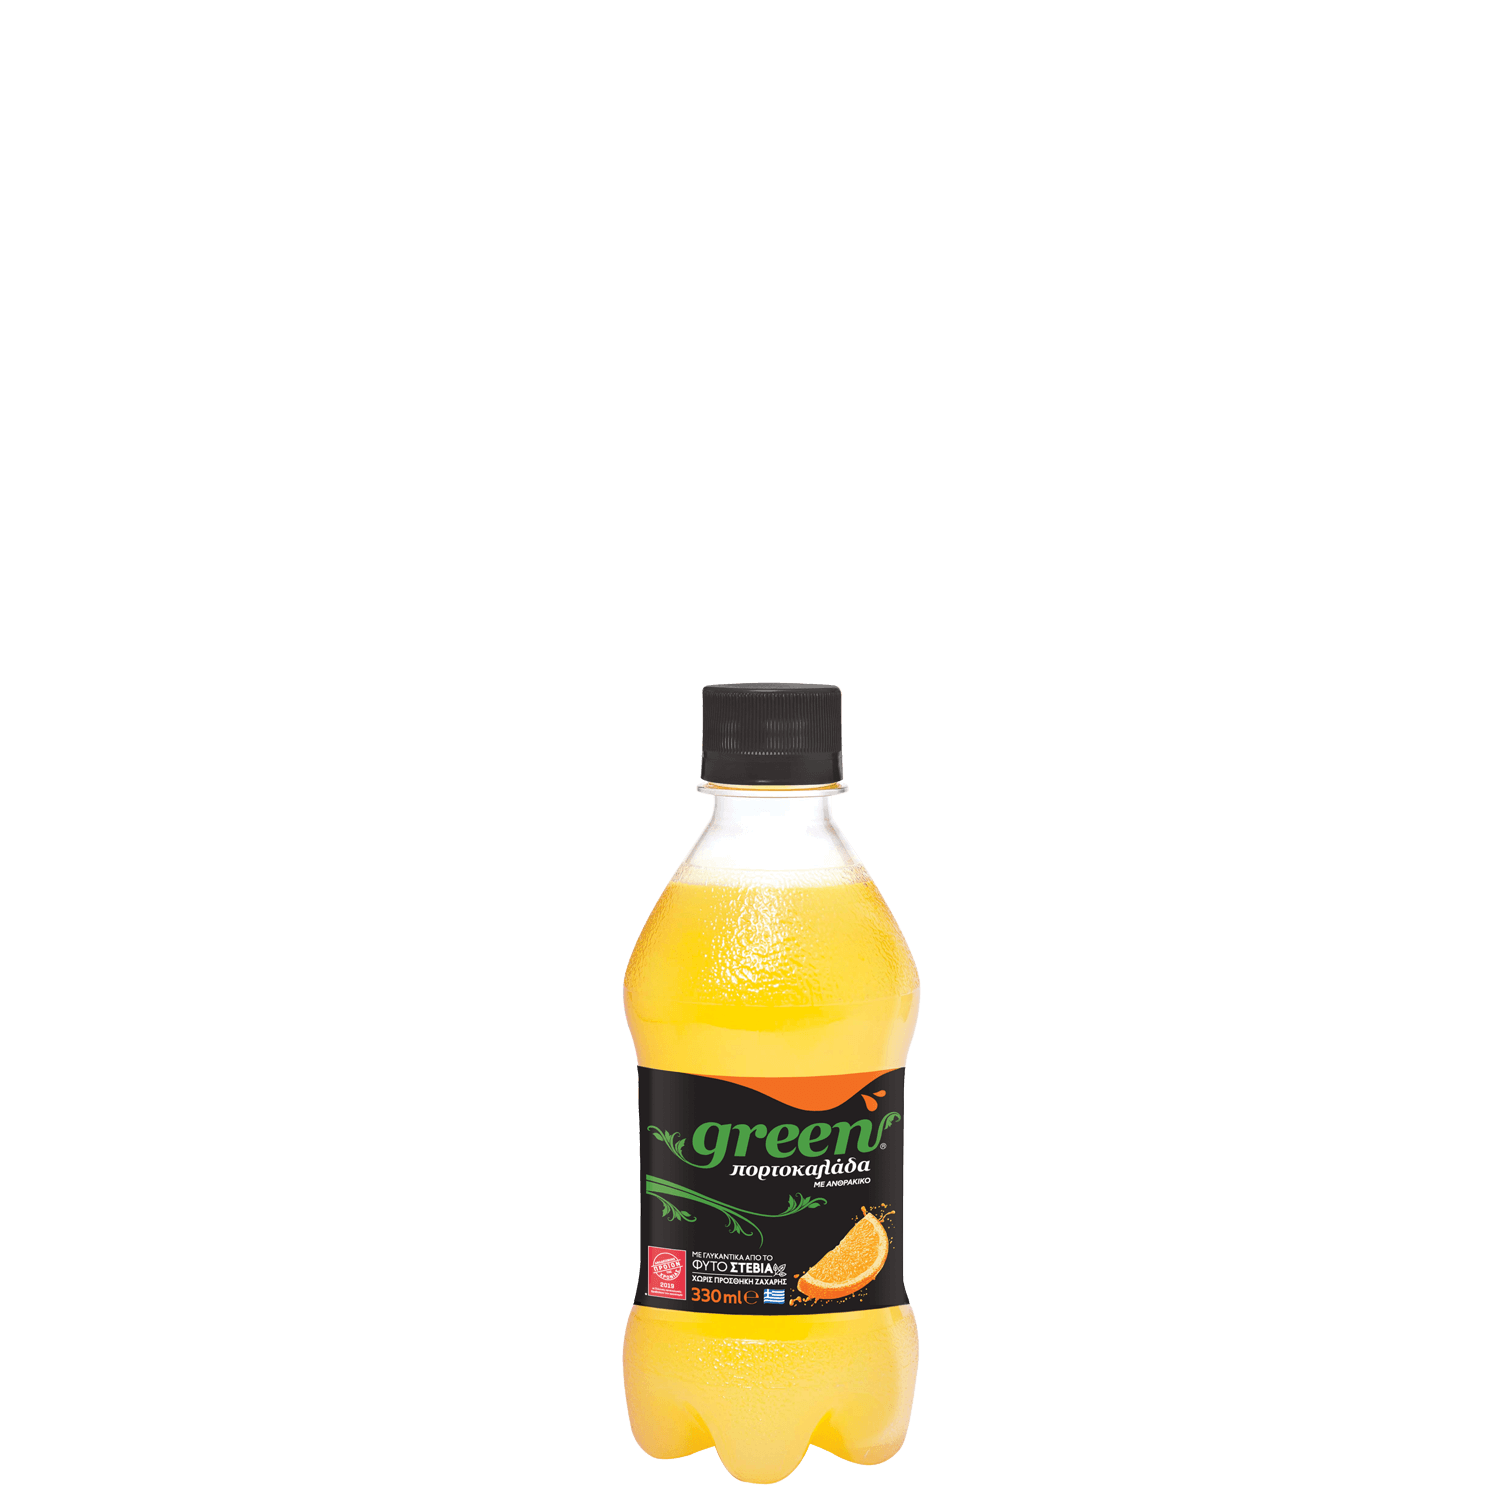 Green Orange - PET - 330ml Bottle